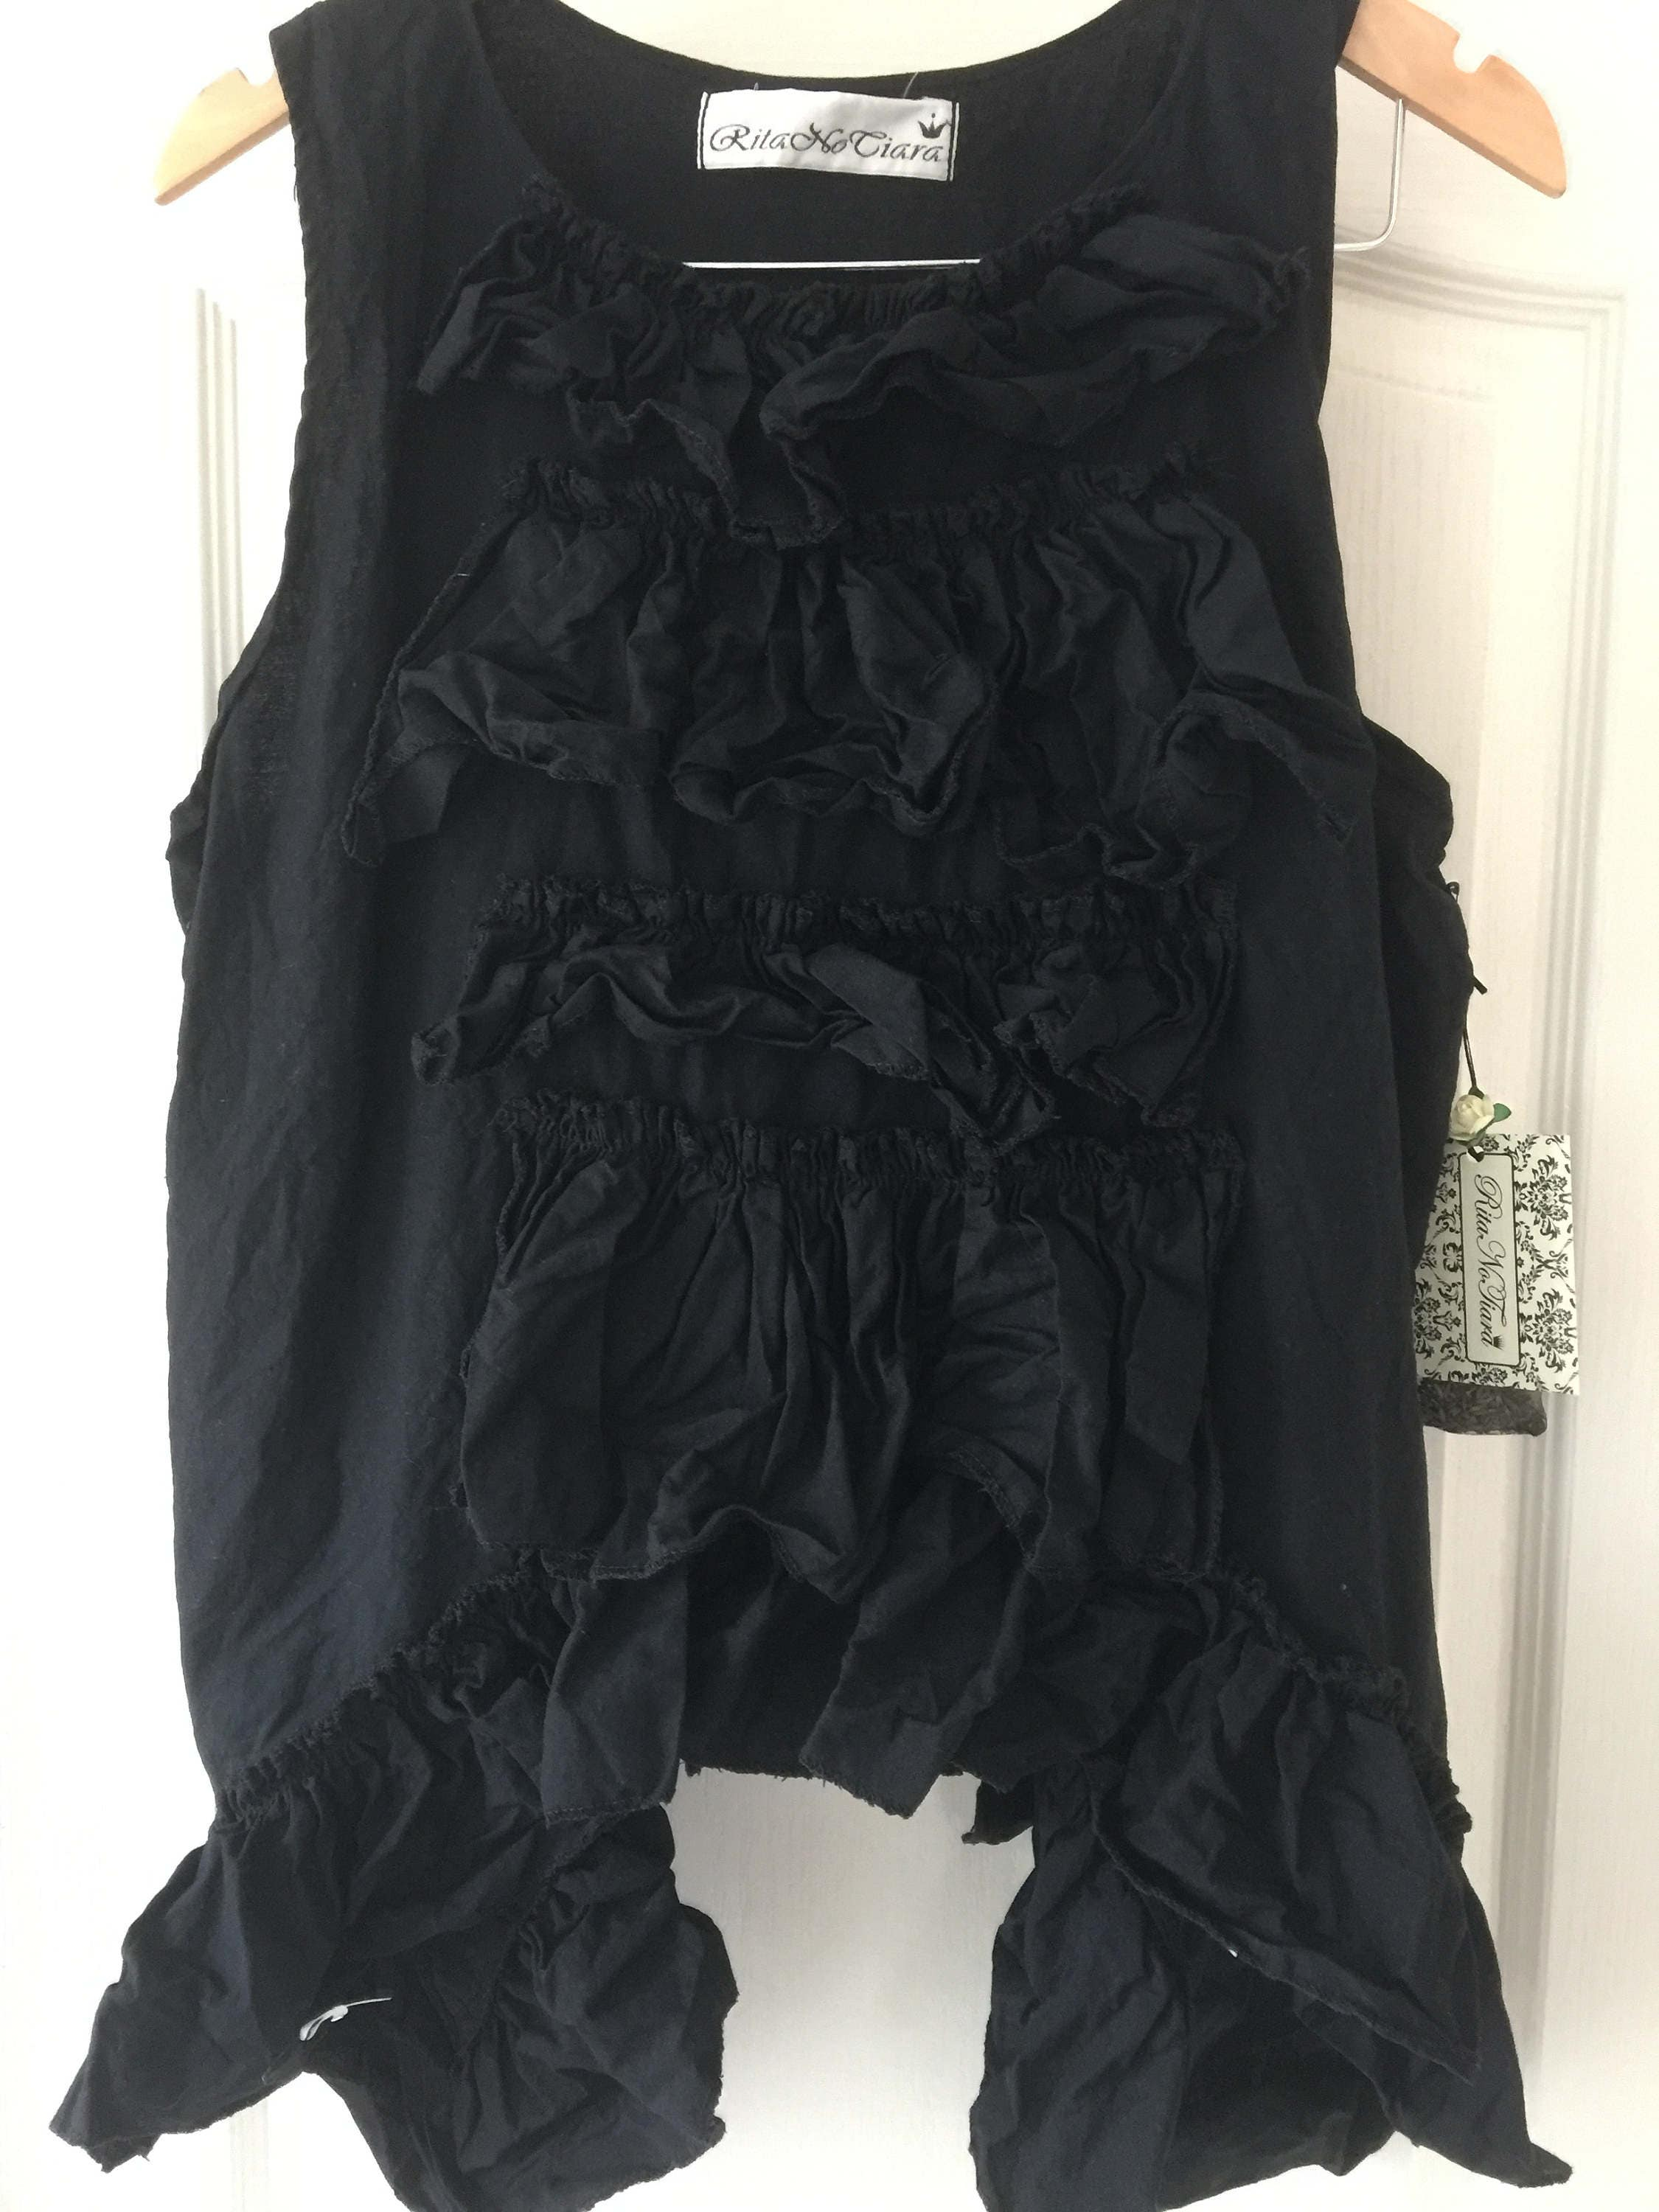 Authentic RITANOTIARA Black Lagenlook All Sizes Boho Prairie Shabby Chic Asymmetric Tank Top ruffled frills layer look quirky funky OSFA